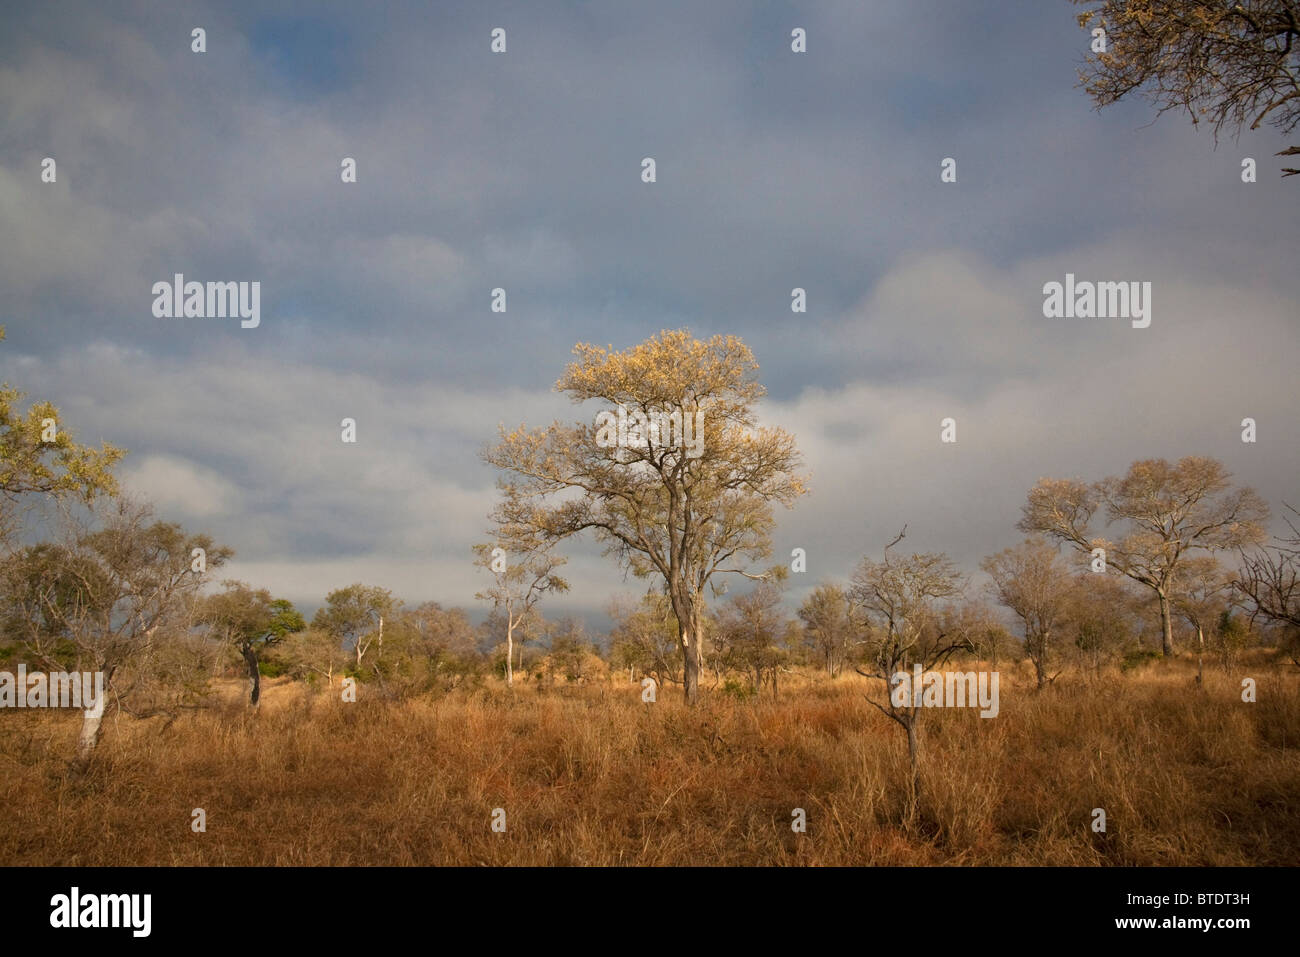 Savanna Acacia landscape during the dry season - Stock Image